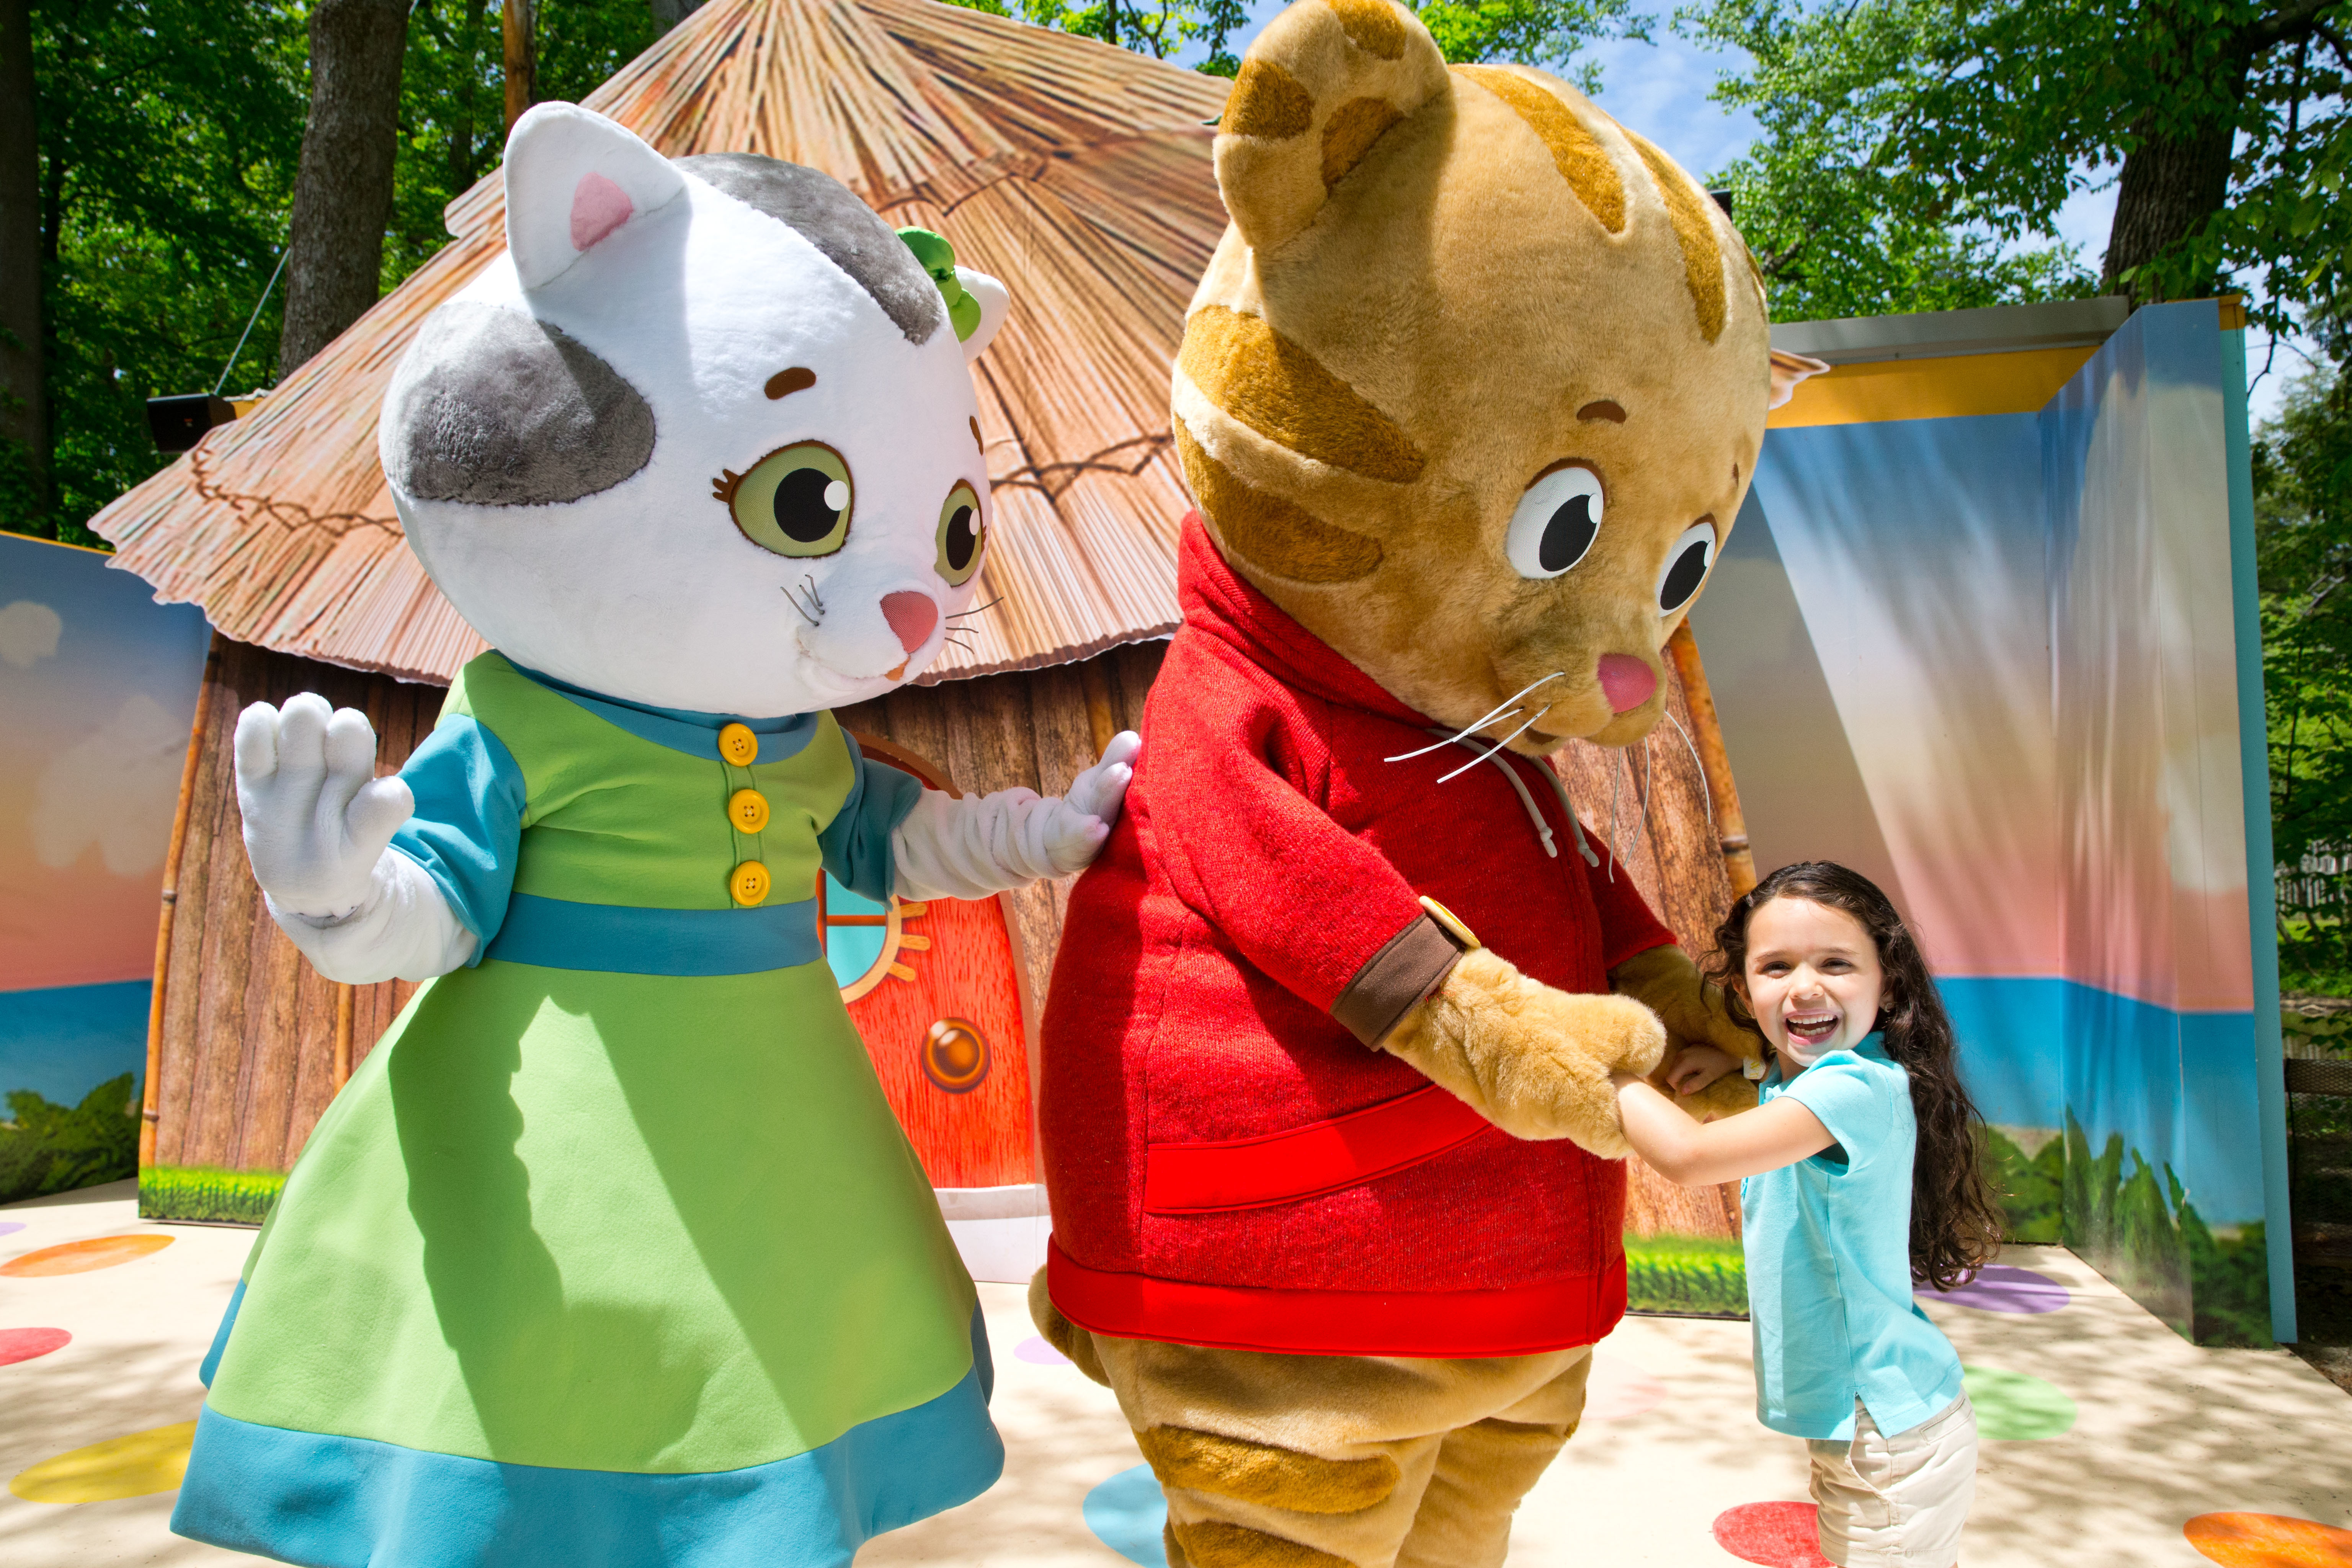 IDLE_DanielTigersNeighborhood_Hug_2015_RCA73P6493.JPG?mtime=20191106112848#asset:107272